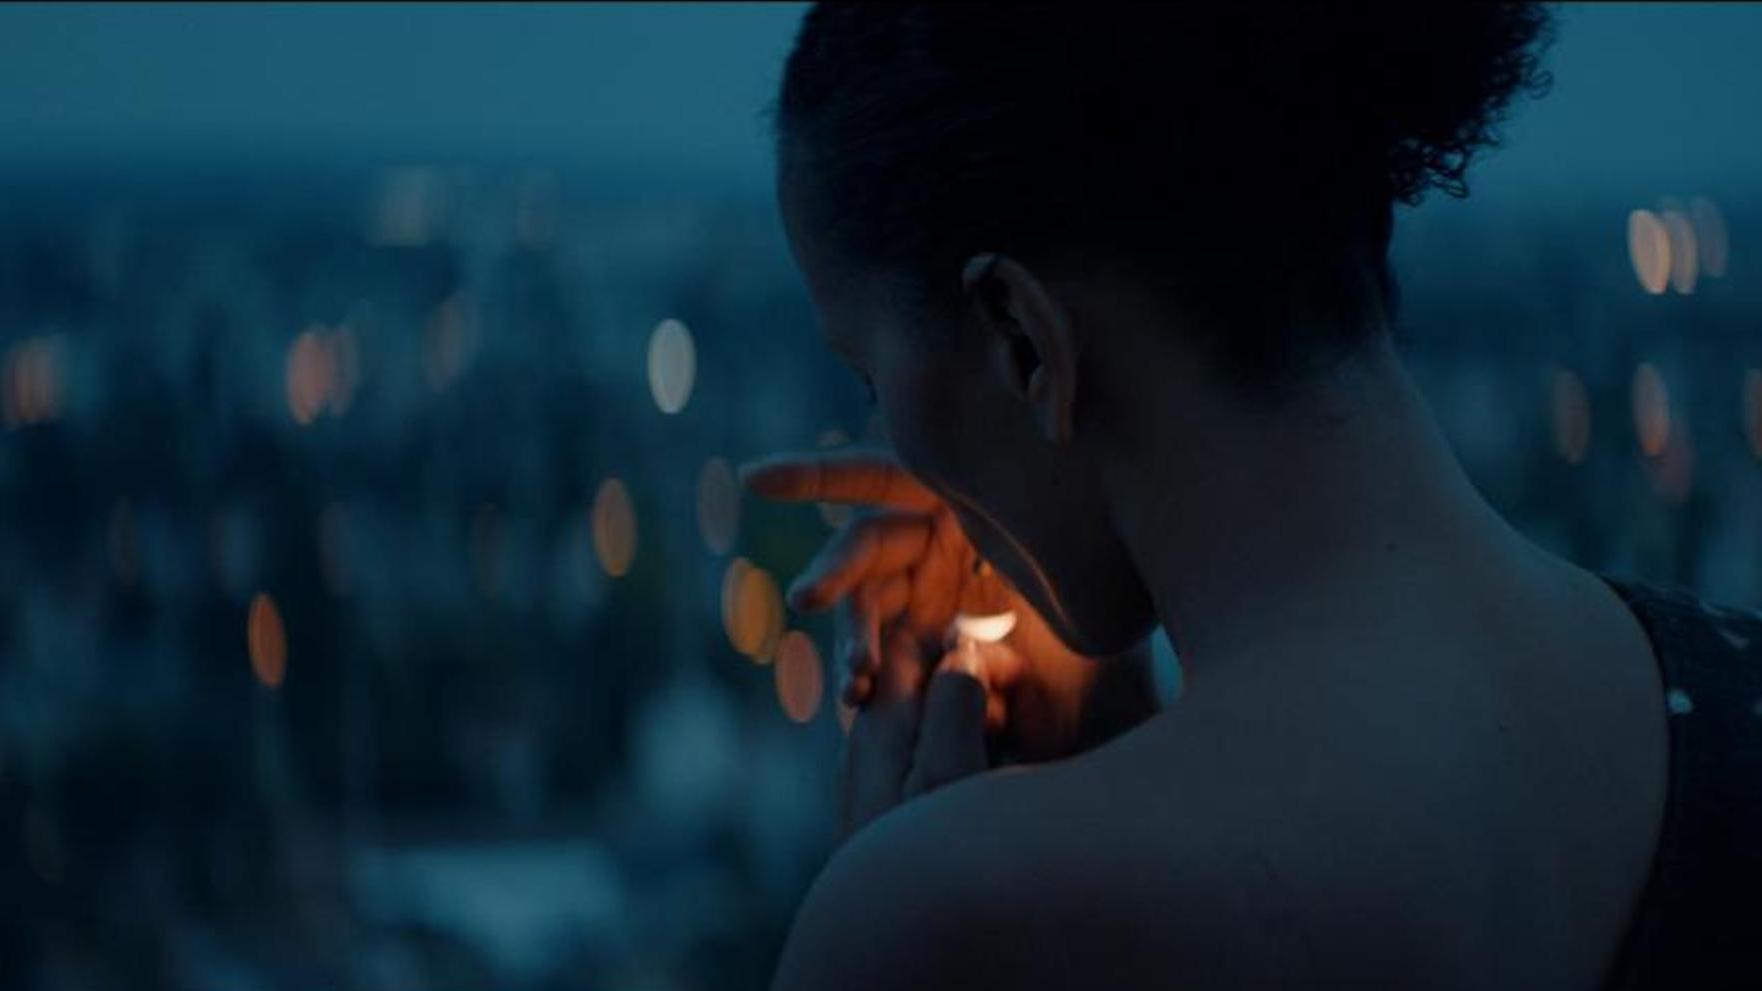 Clarisse Albrecht as Emma in Bantú Mama, lighting a cigeratte in the evening.